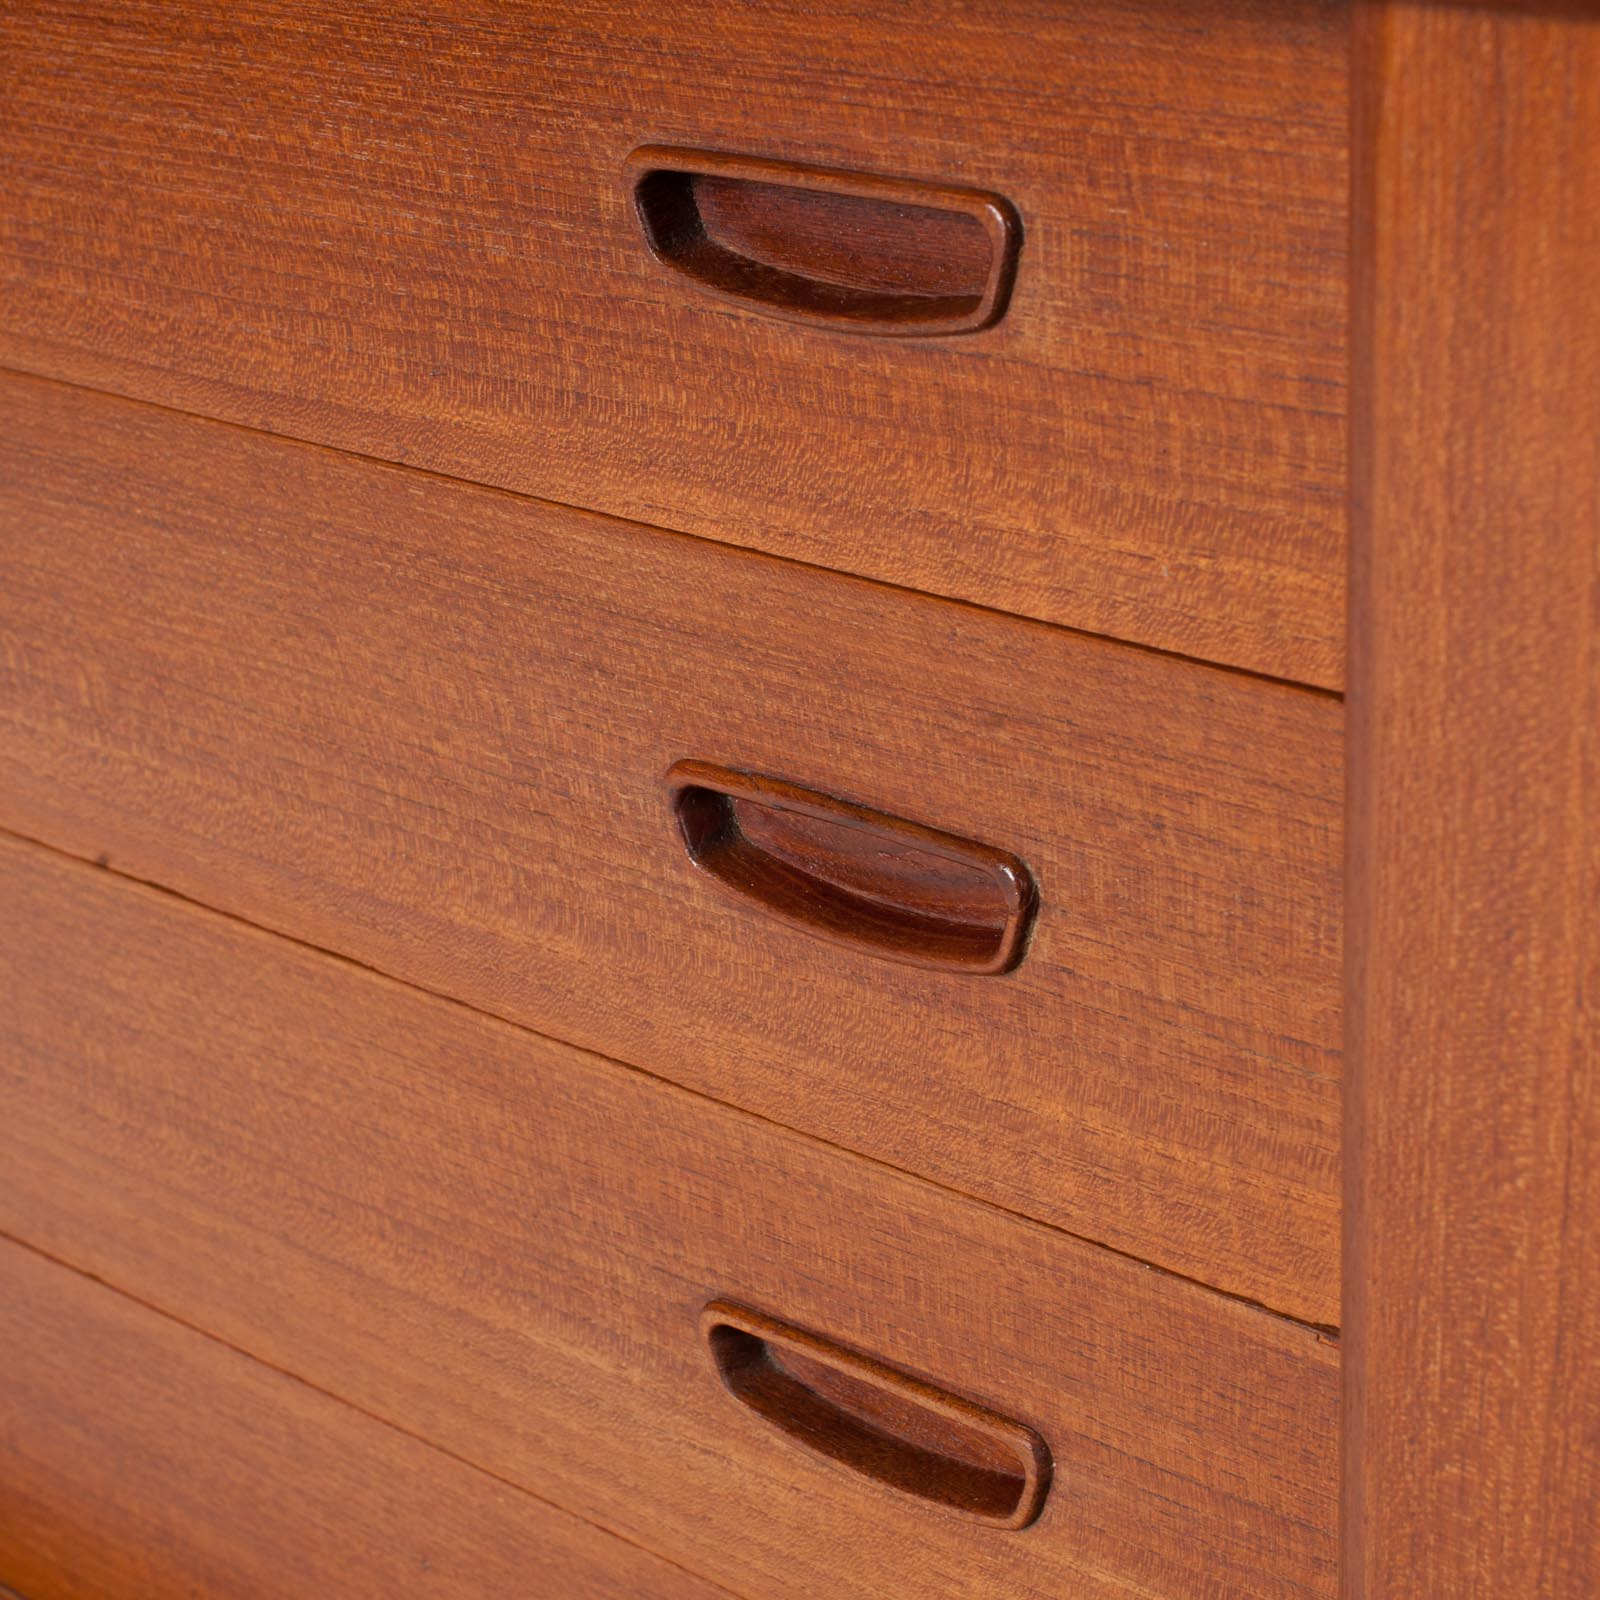 Sideboard By Clause And Son In Teak, 1960s, Denmark12